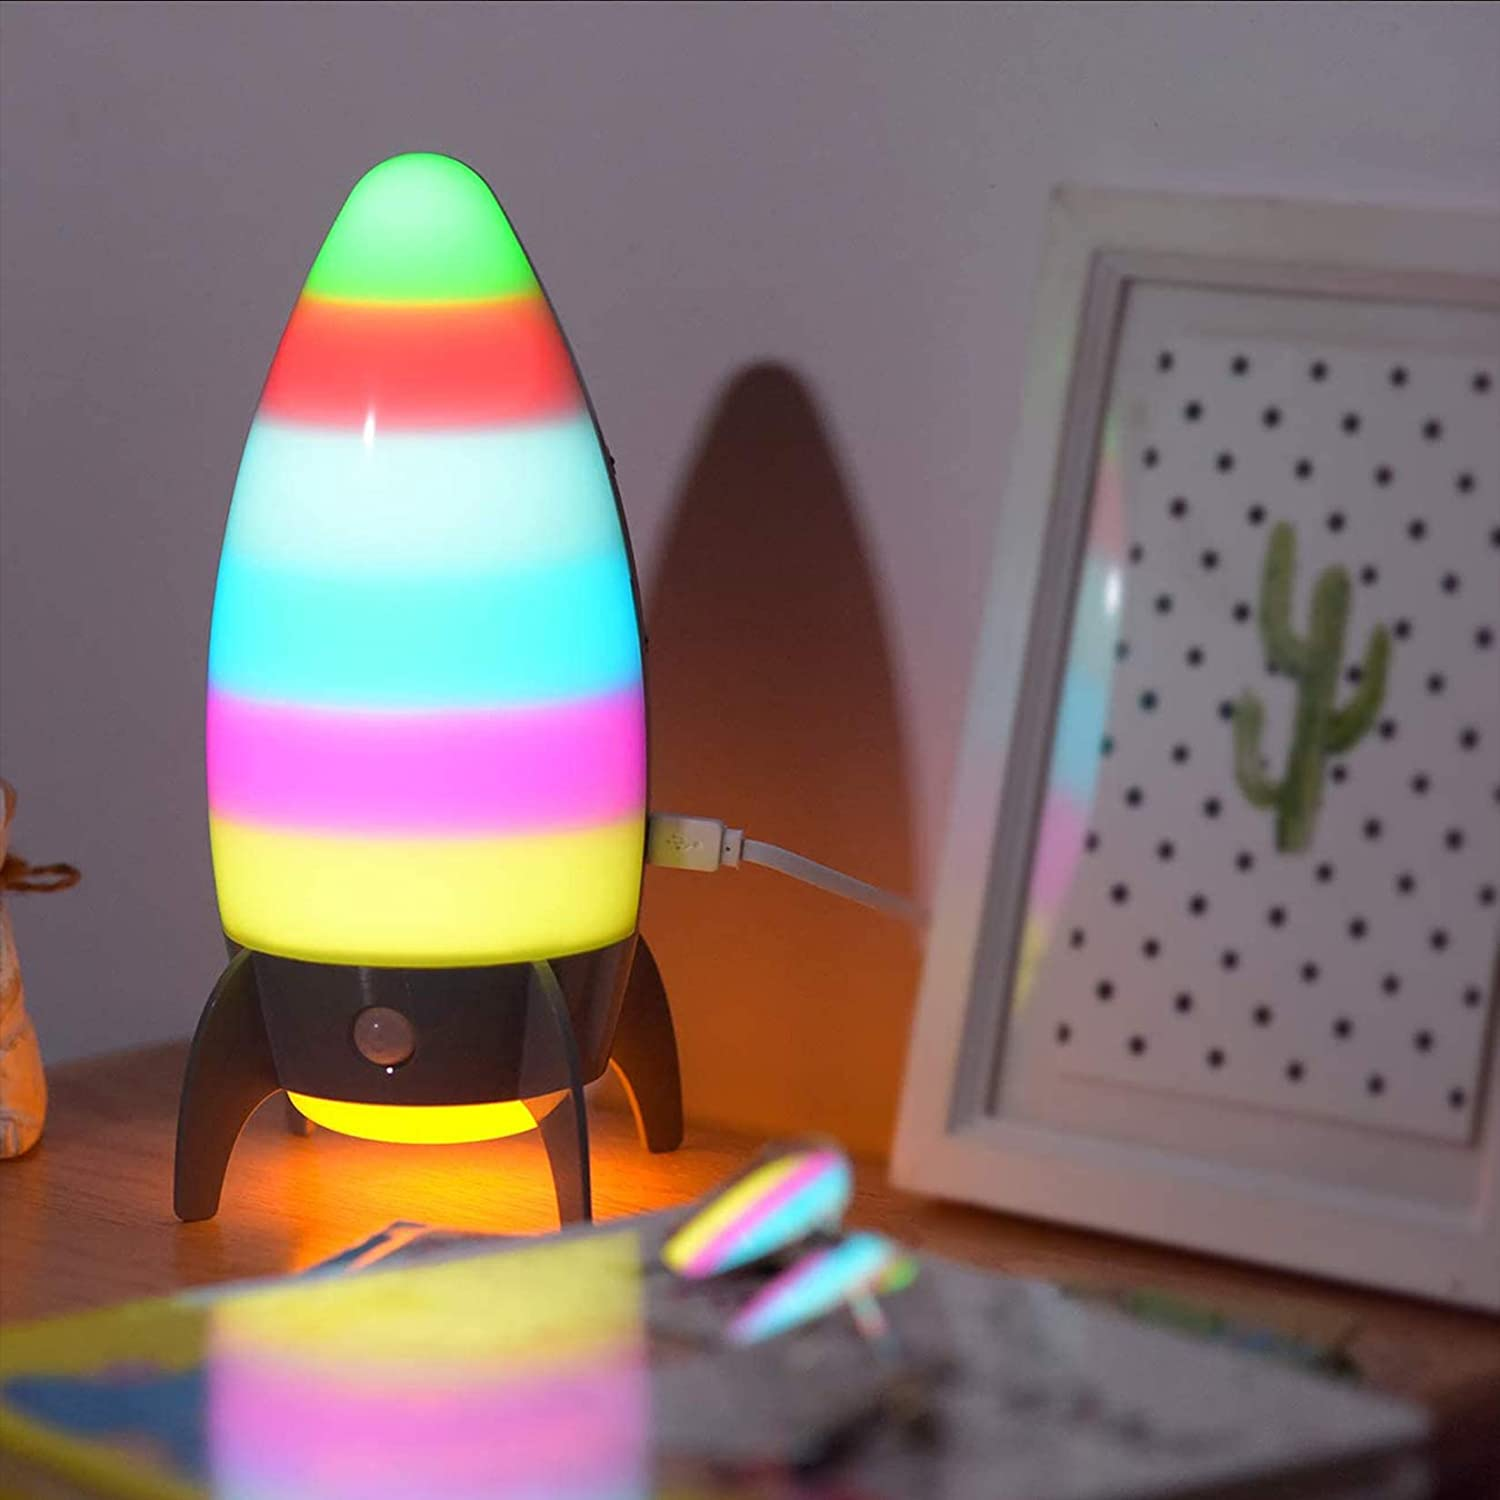 Rocket Night Lights for Kids with 7 RGB Color-Changing Motion Sensor, Warm White Spaceship Bedside Lamp Holiday Xmas Gifts for Baby Room, Bedroom, Hallway